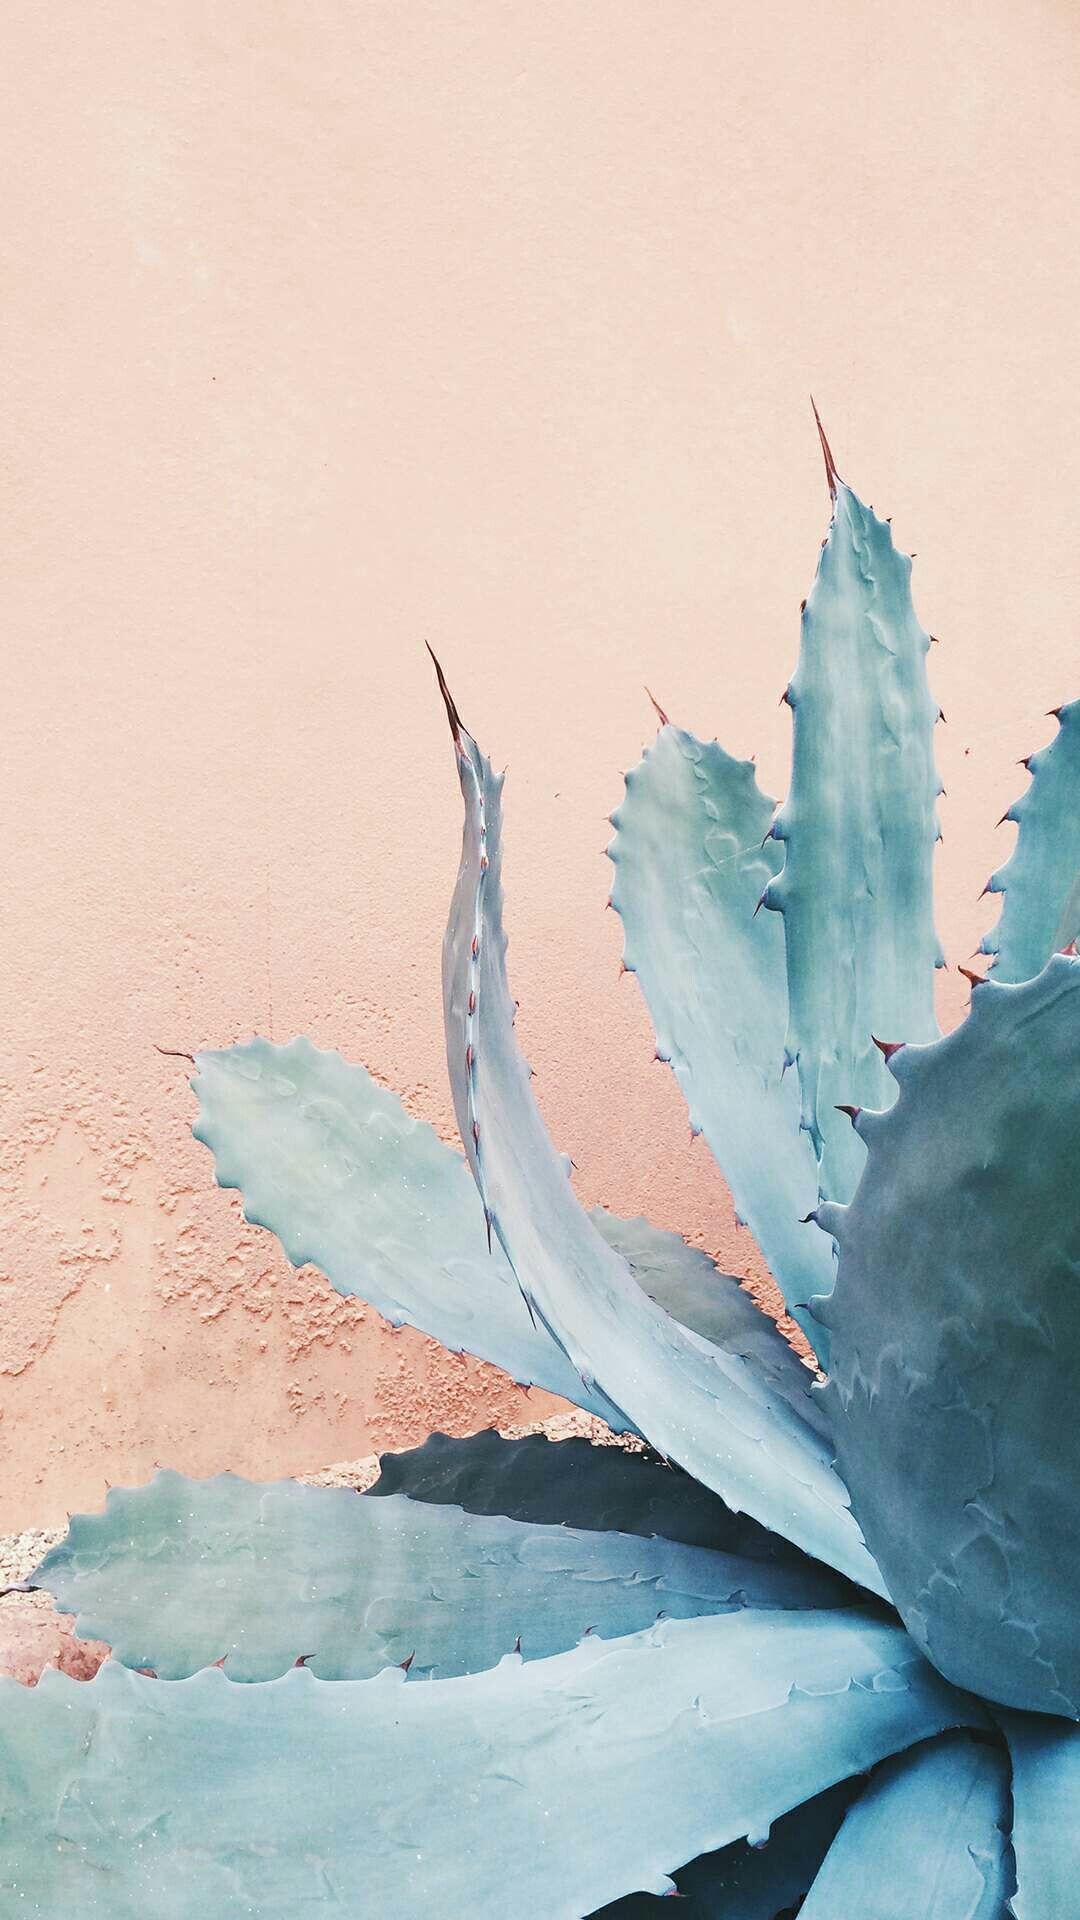 Pin by Ana on Wallpapers   Plants, Cactus, Planting Flowers